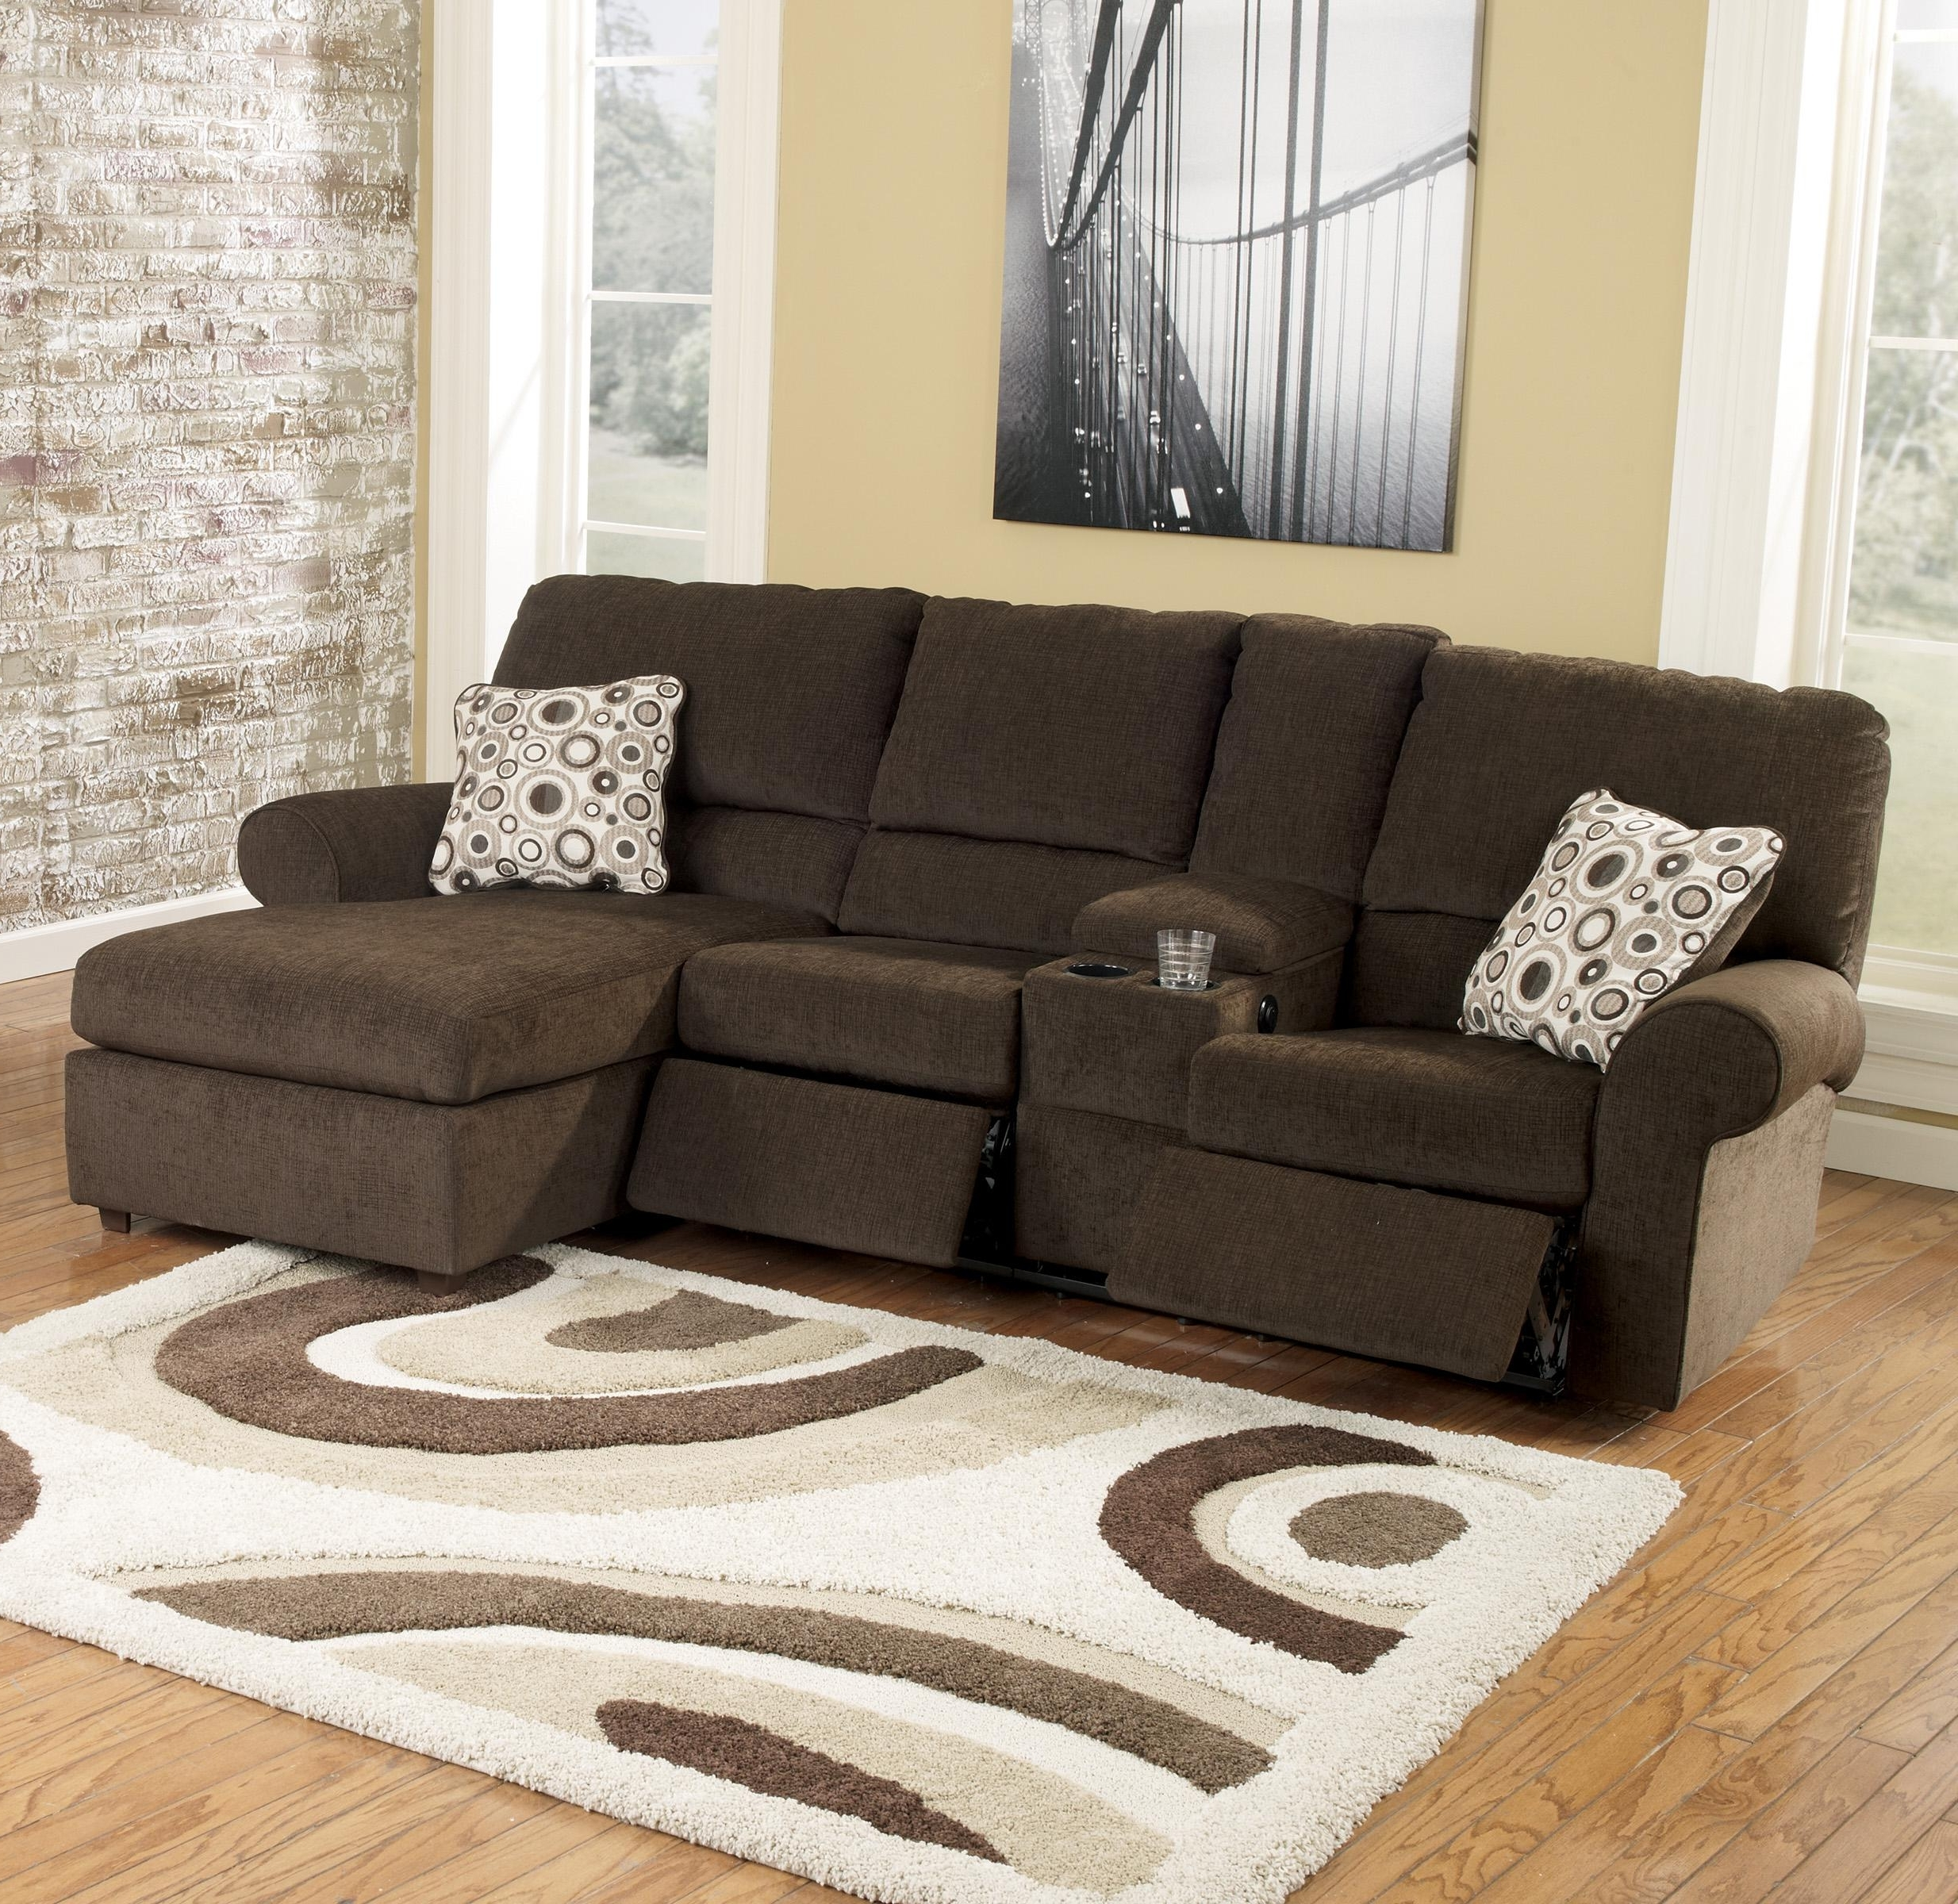 Sofa : Engaging Small Sectional Sofa With Recliner Round Cup With Most Popular Sectional Sofas With Recliners (View 17 of 20)